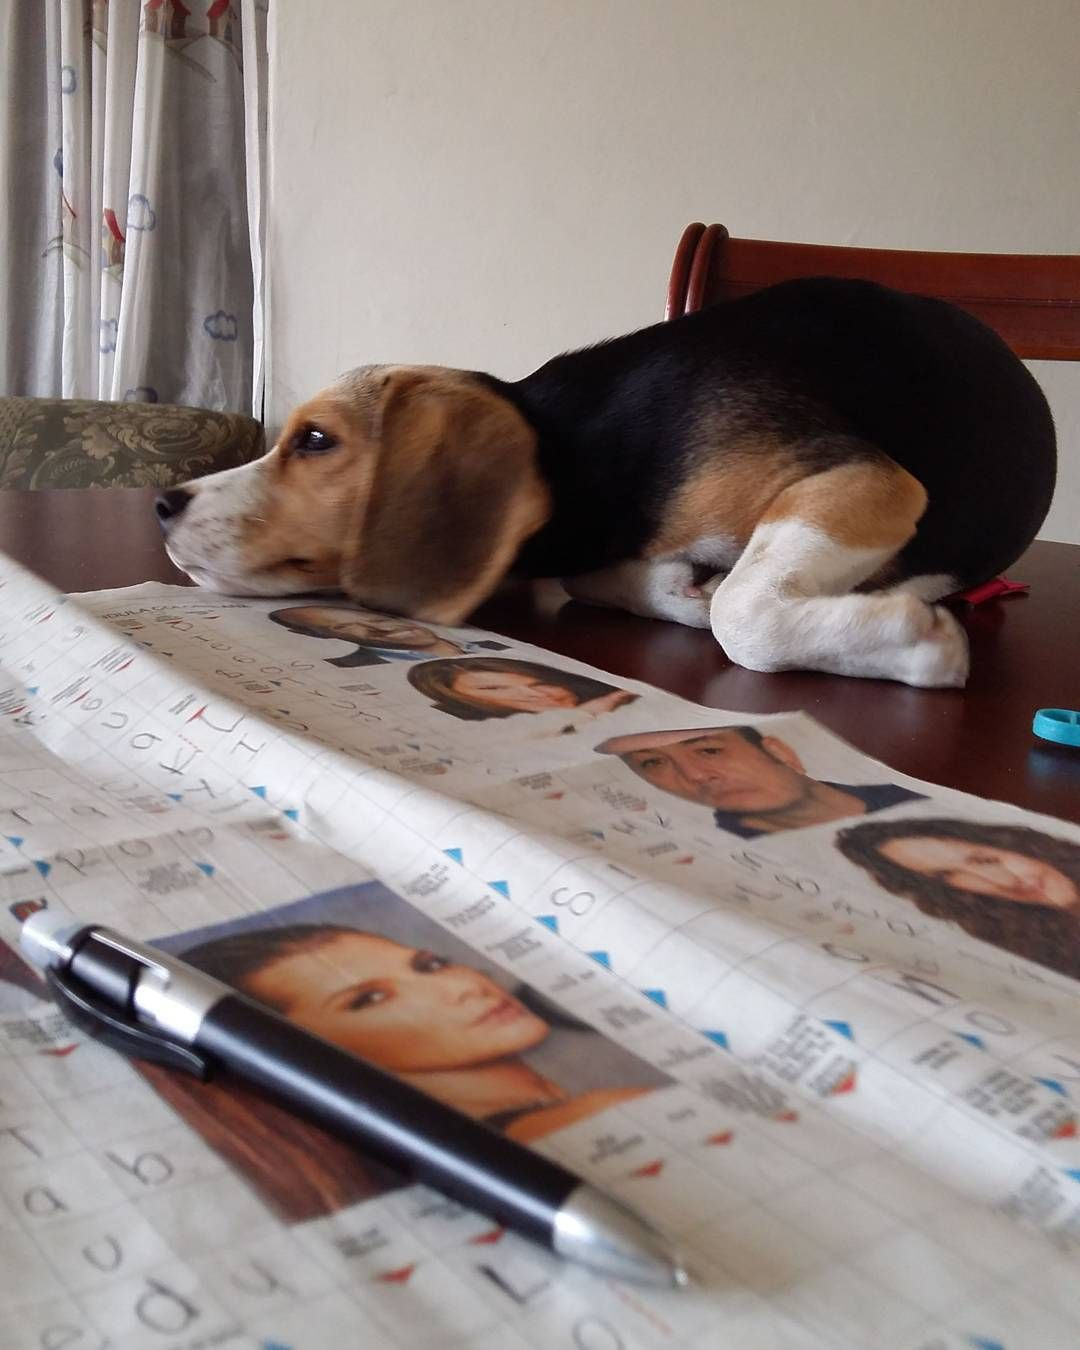 Pin by Michelle LaFremier on beagles Beagle puppy